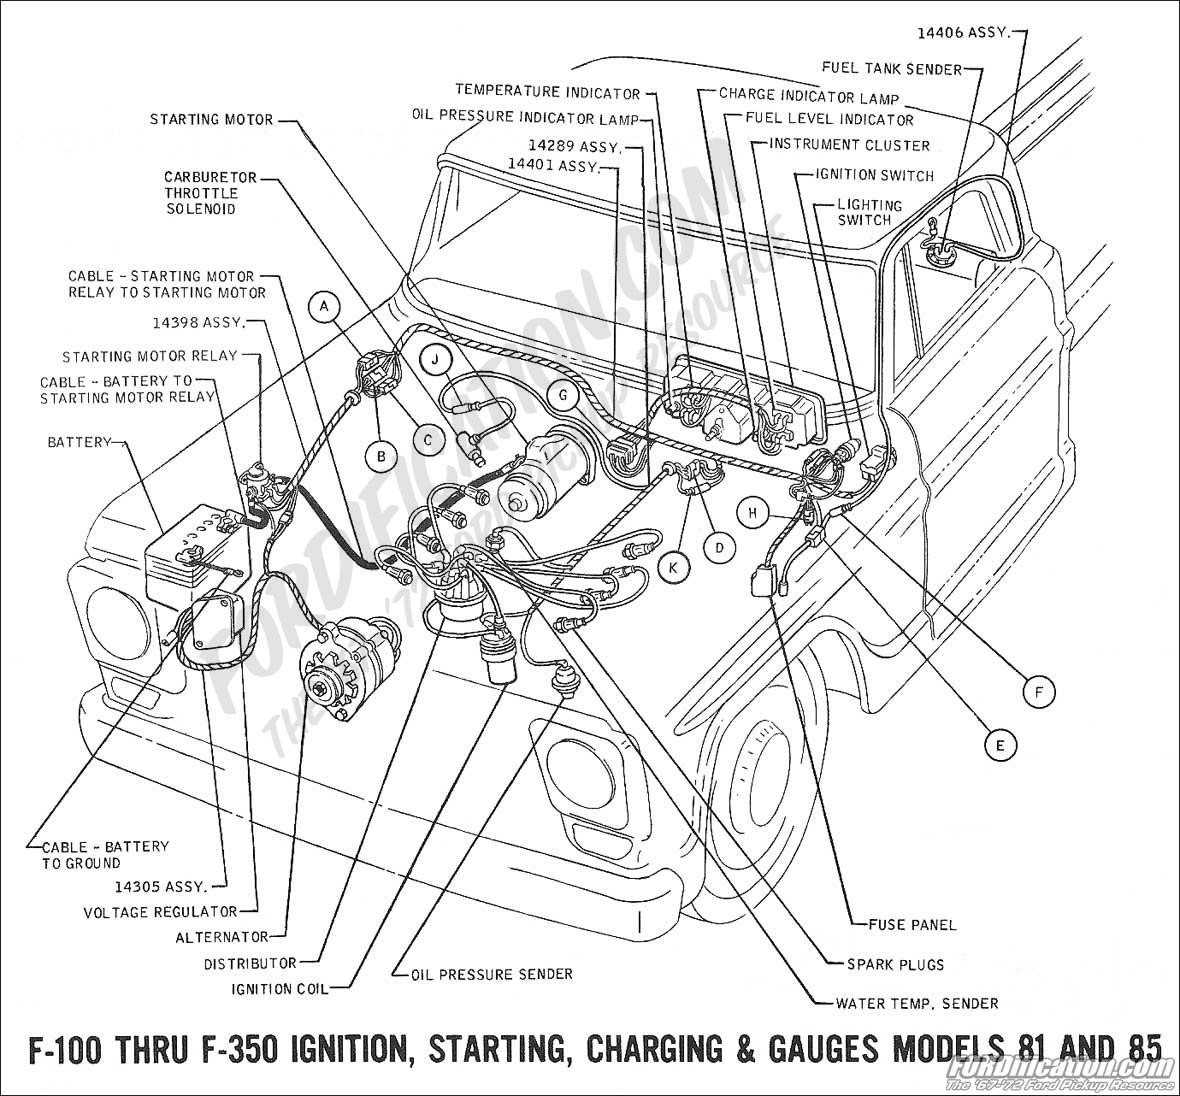 1973 F100 Solenoid Wiring Diagram Wire Center About Quiksilvertm Short Circuit Remix Modern Fit Tshirt Eqyzt03556 Ford F 250 Fuel Sender Schematics Rh Seniorlivinguniversity Co Brake